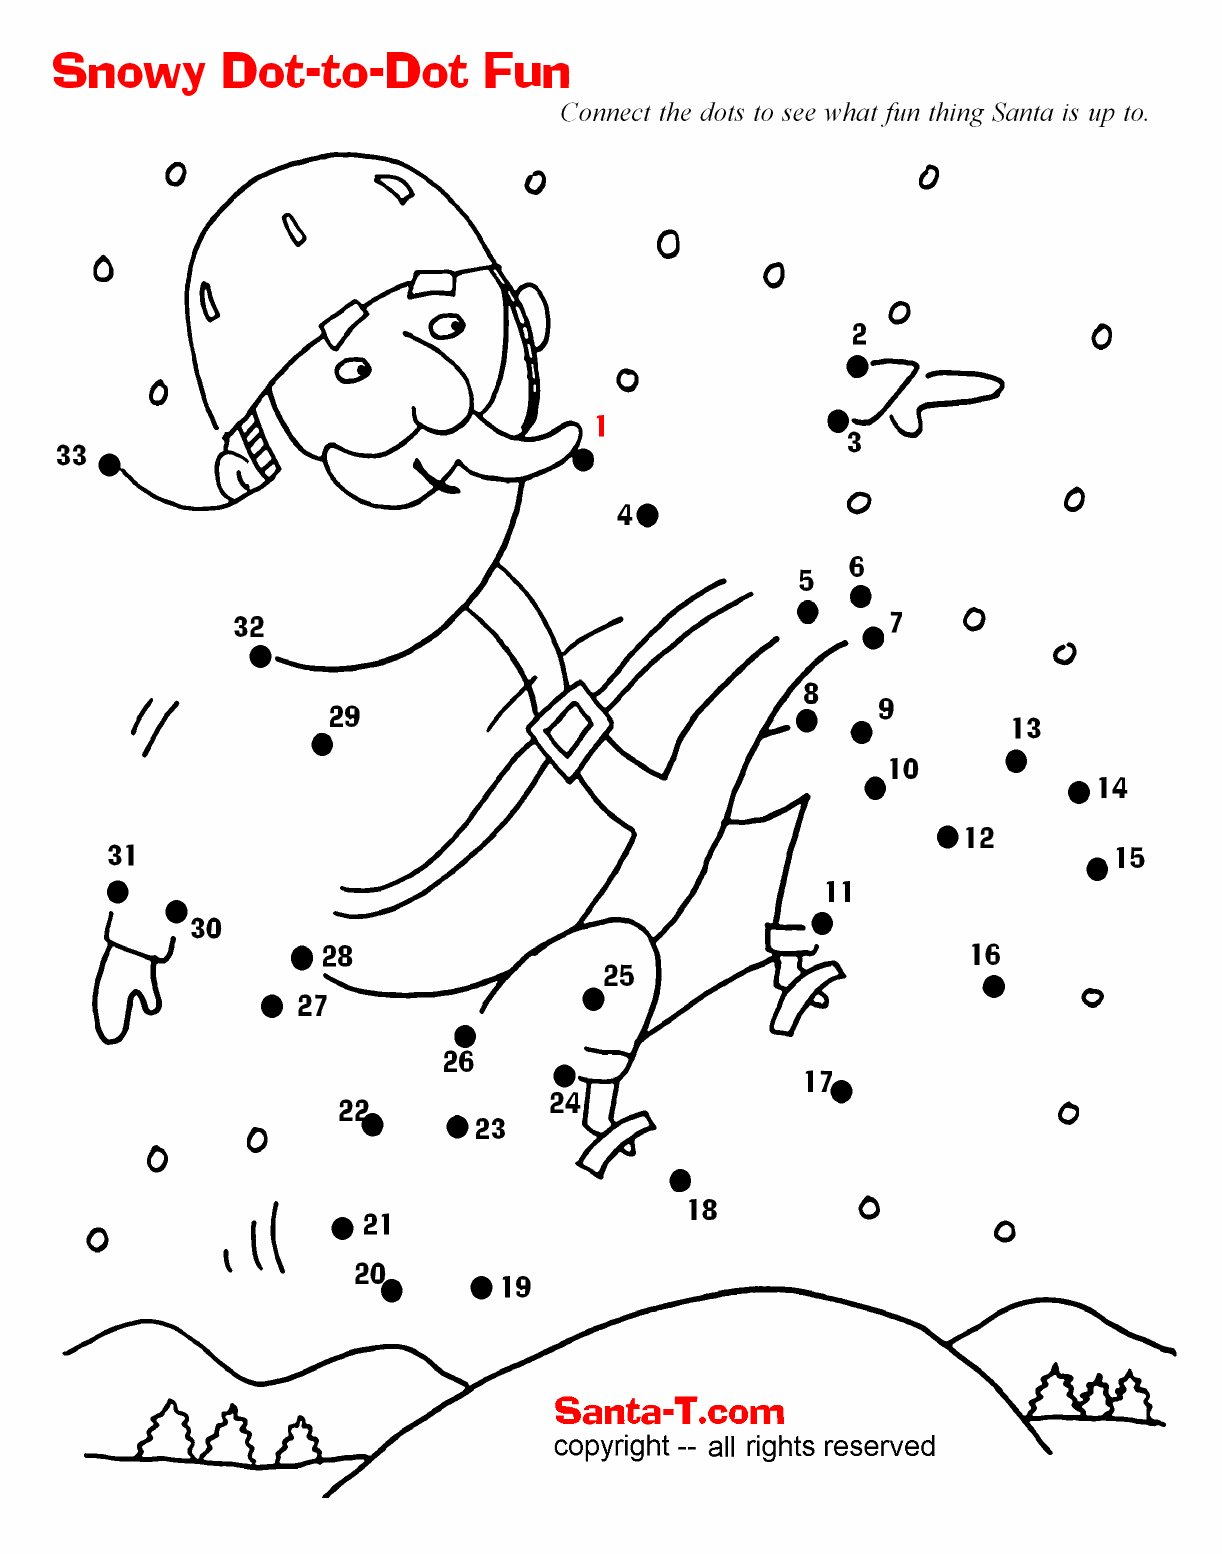 Christmas Dot To Dot.Snowy Santa Fun Dot To Dot Connect The Dots To See What Fun